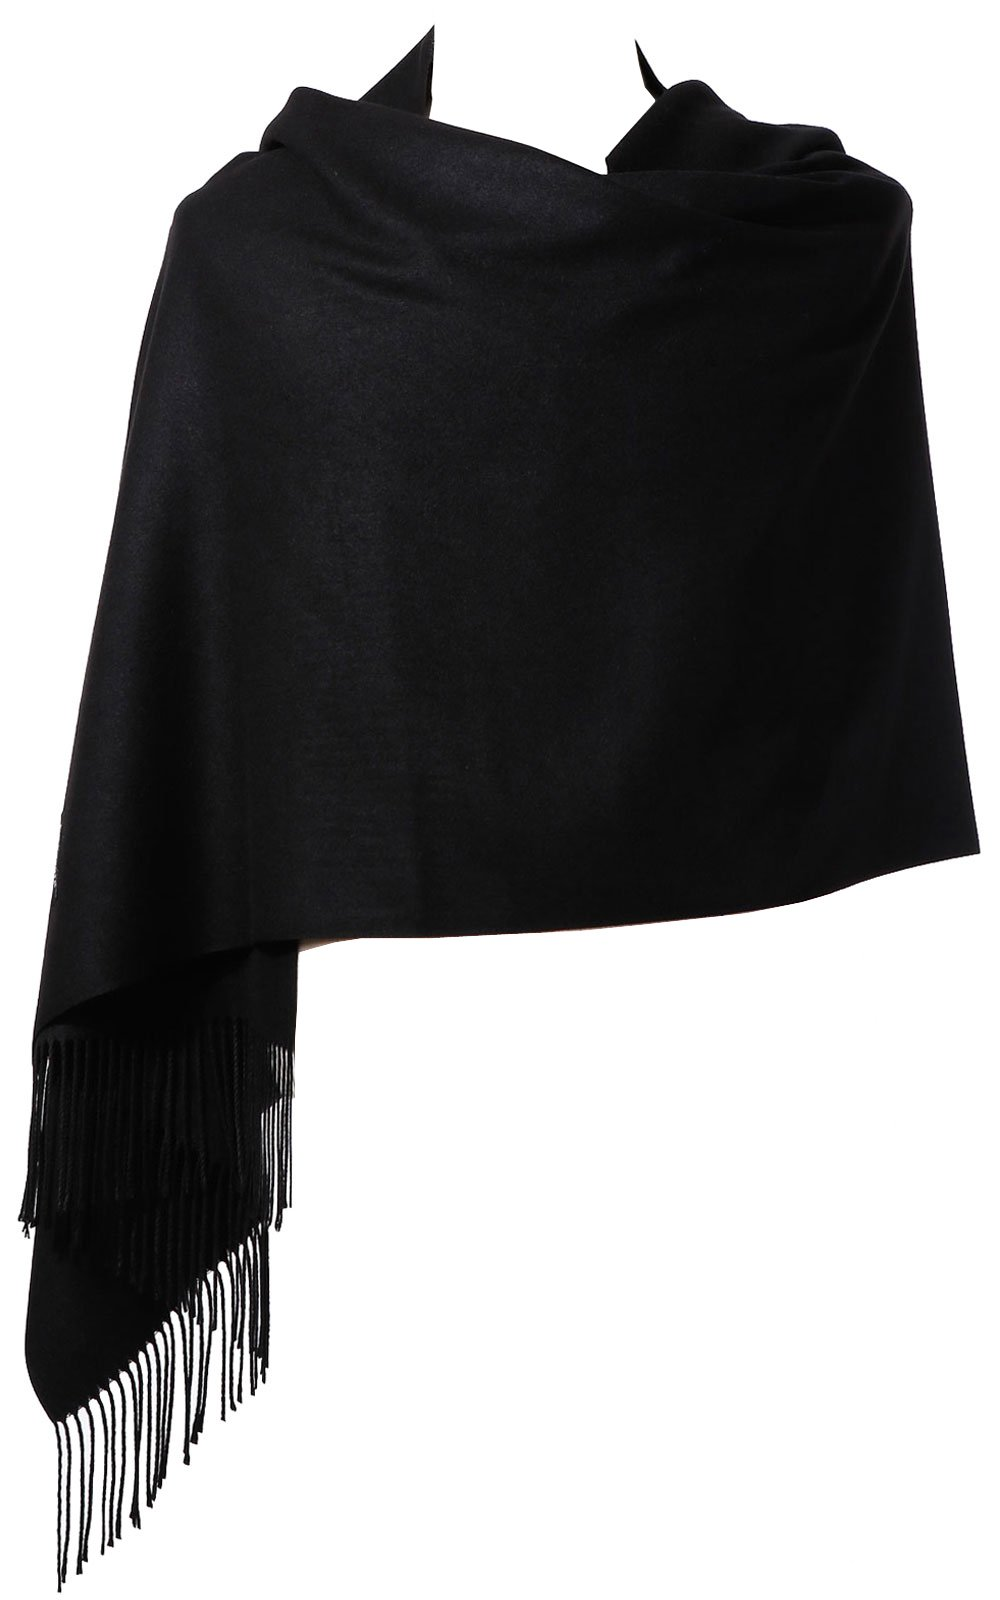 Womens Pashmina Shawl Wrap Scarf - Ohayomi Solid Color Cashmere Stole Extra Large 78''x28'' (Black) by OHAYOMI